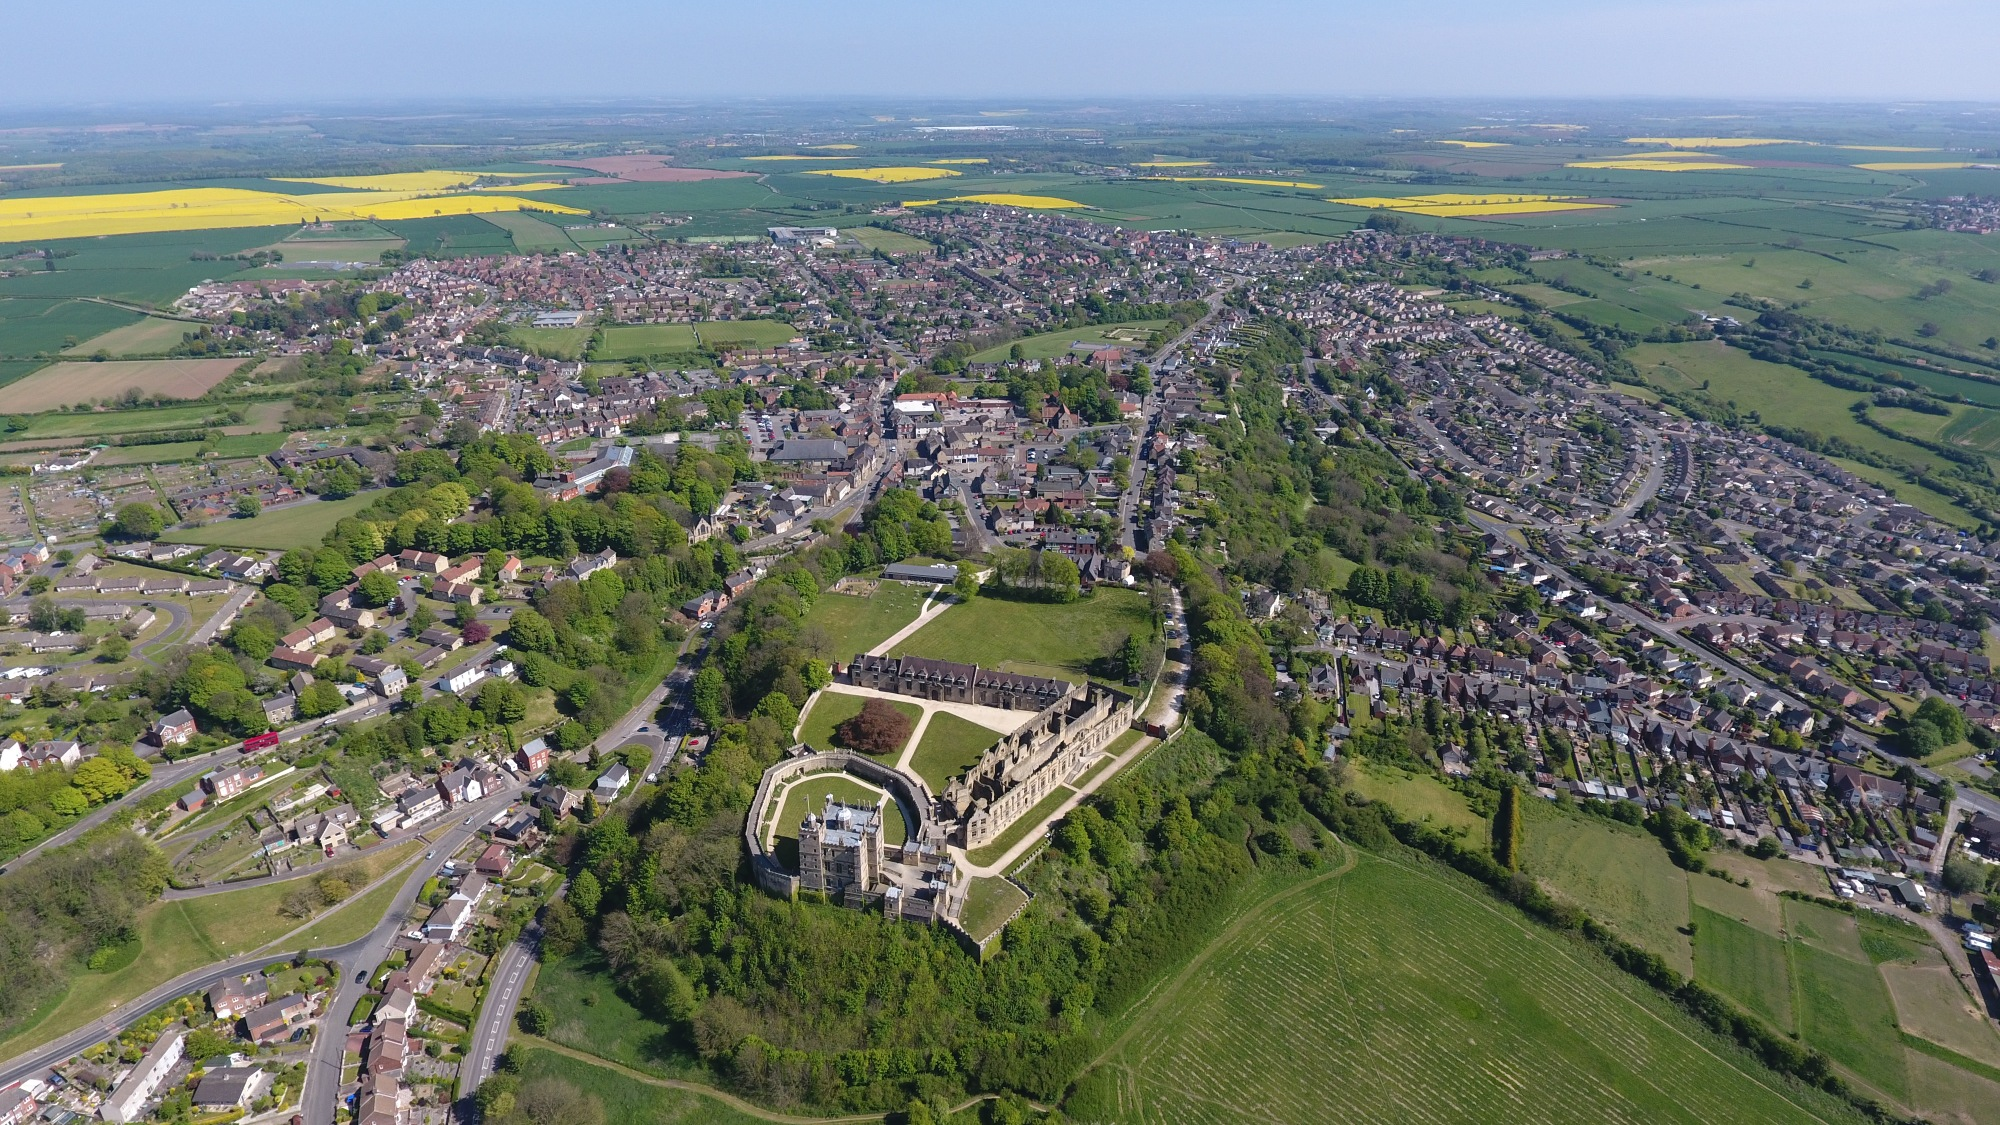 An aerial photo of Bolsover Castle